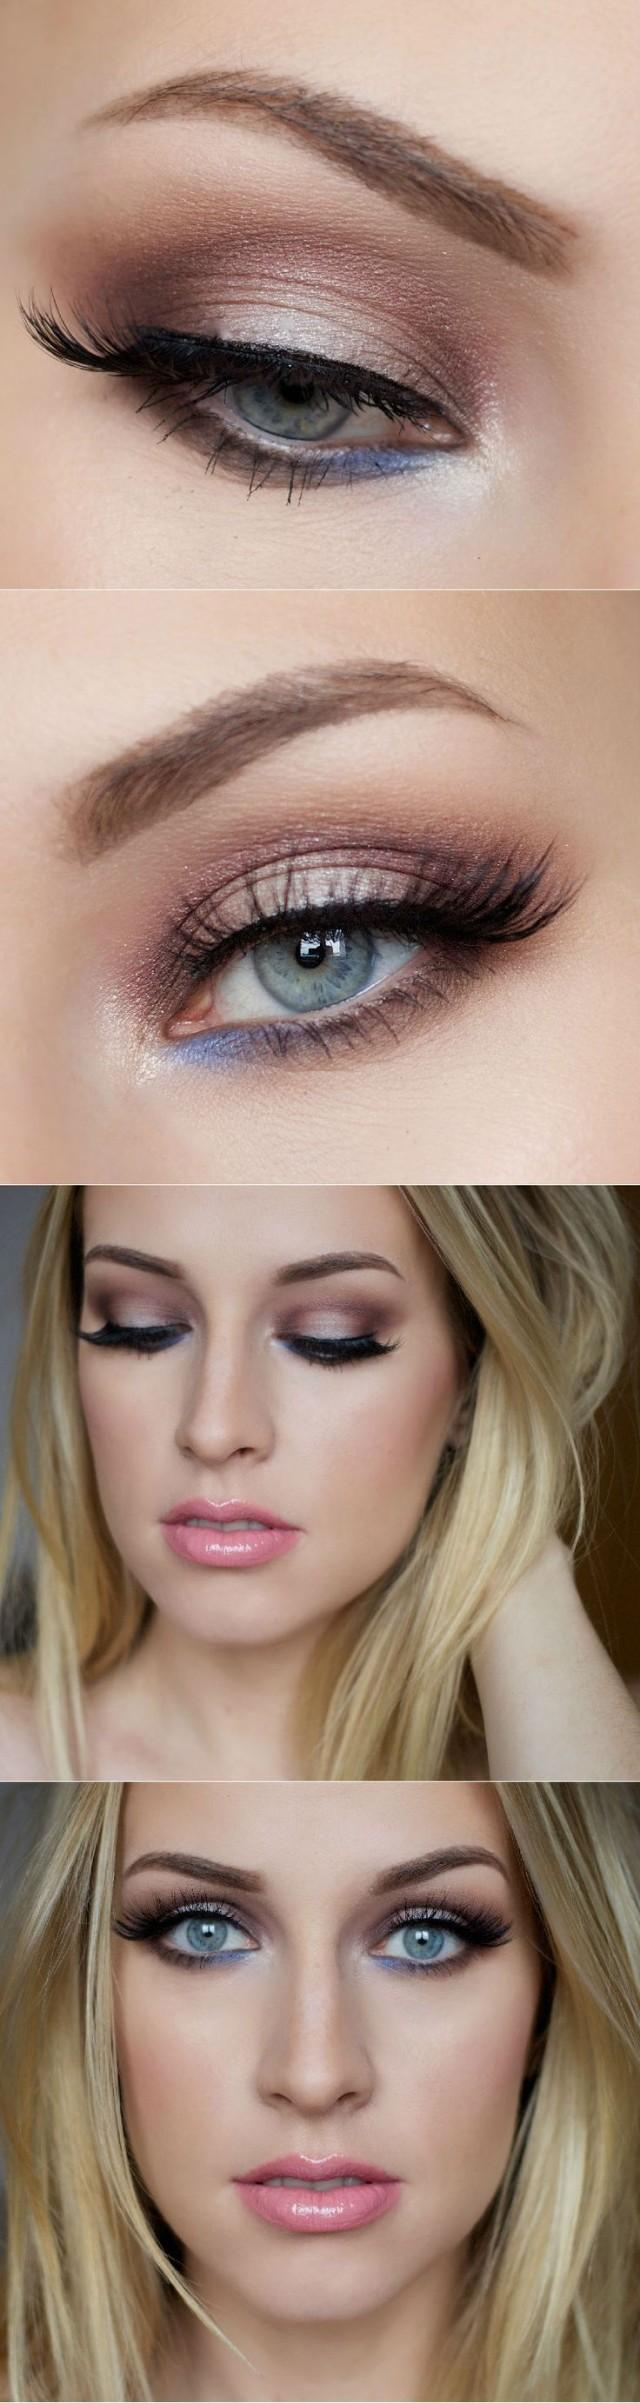 makeup for fair skin and blue eyes | makeupsites.co